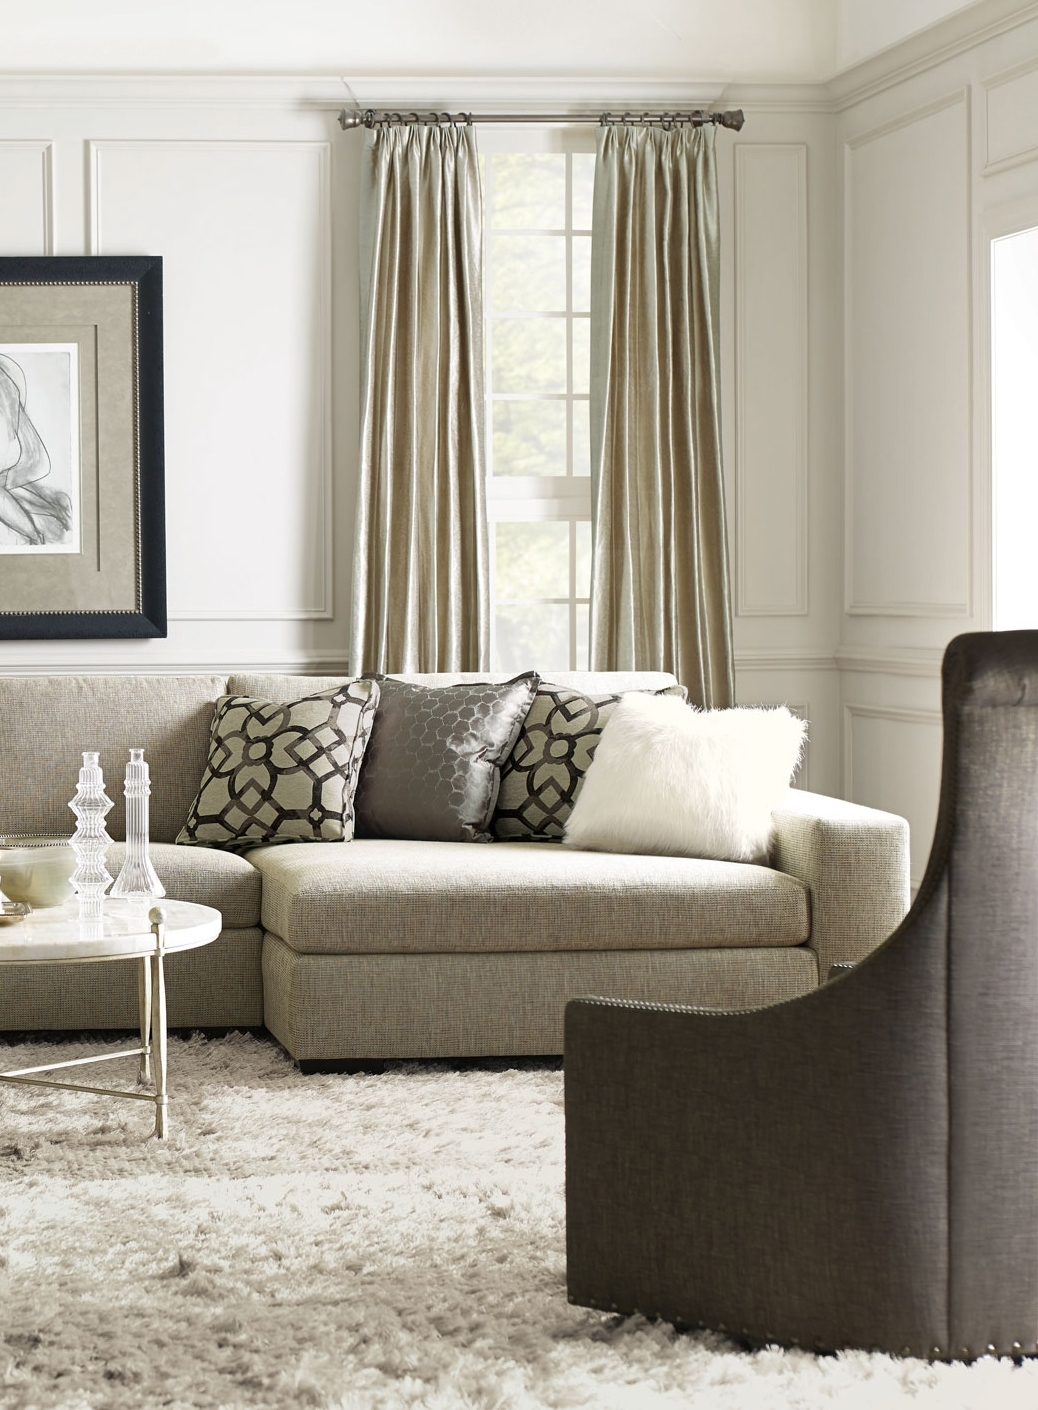 Bernhardt | Orlando Sectional Sofa, Maurice Swivel Chair, Clarion within Orlando Sectional Sofas (Image 2 of 10)